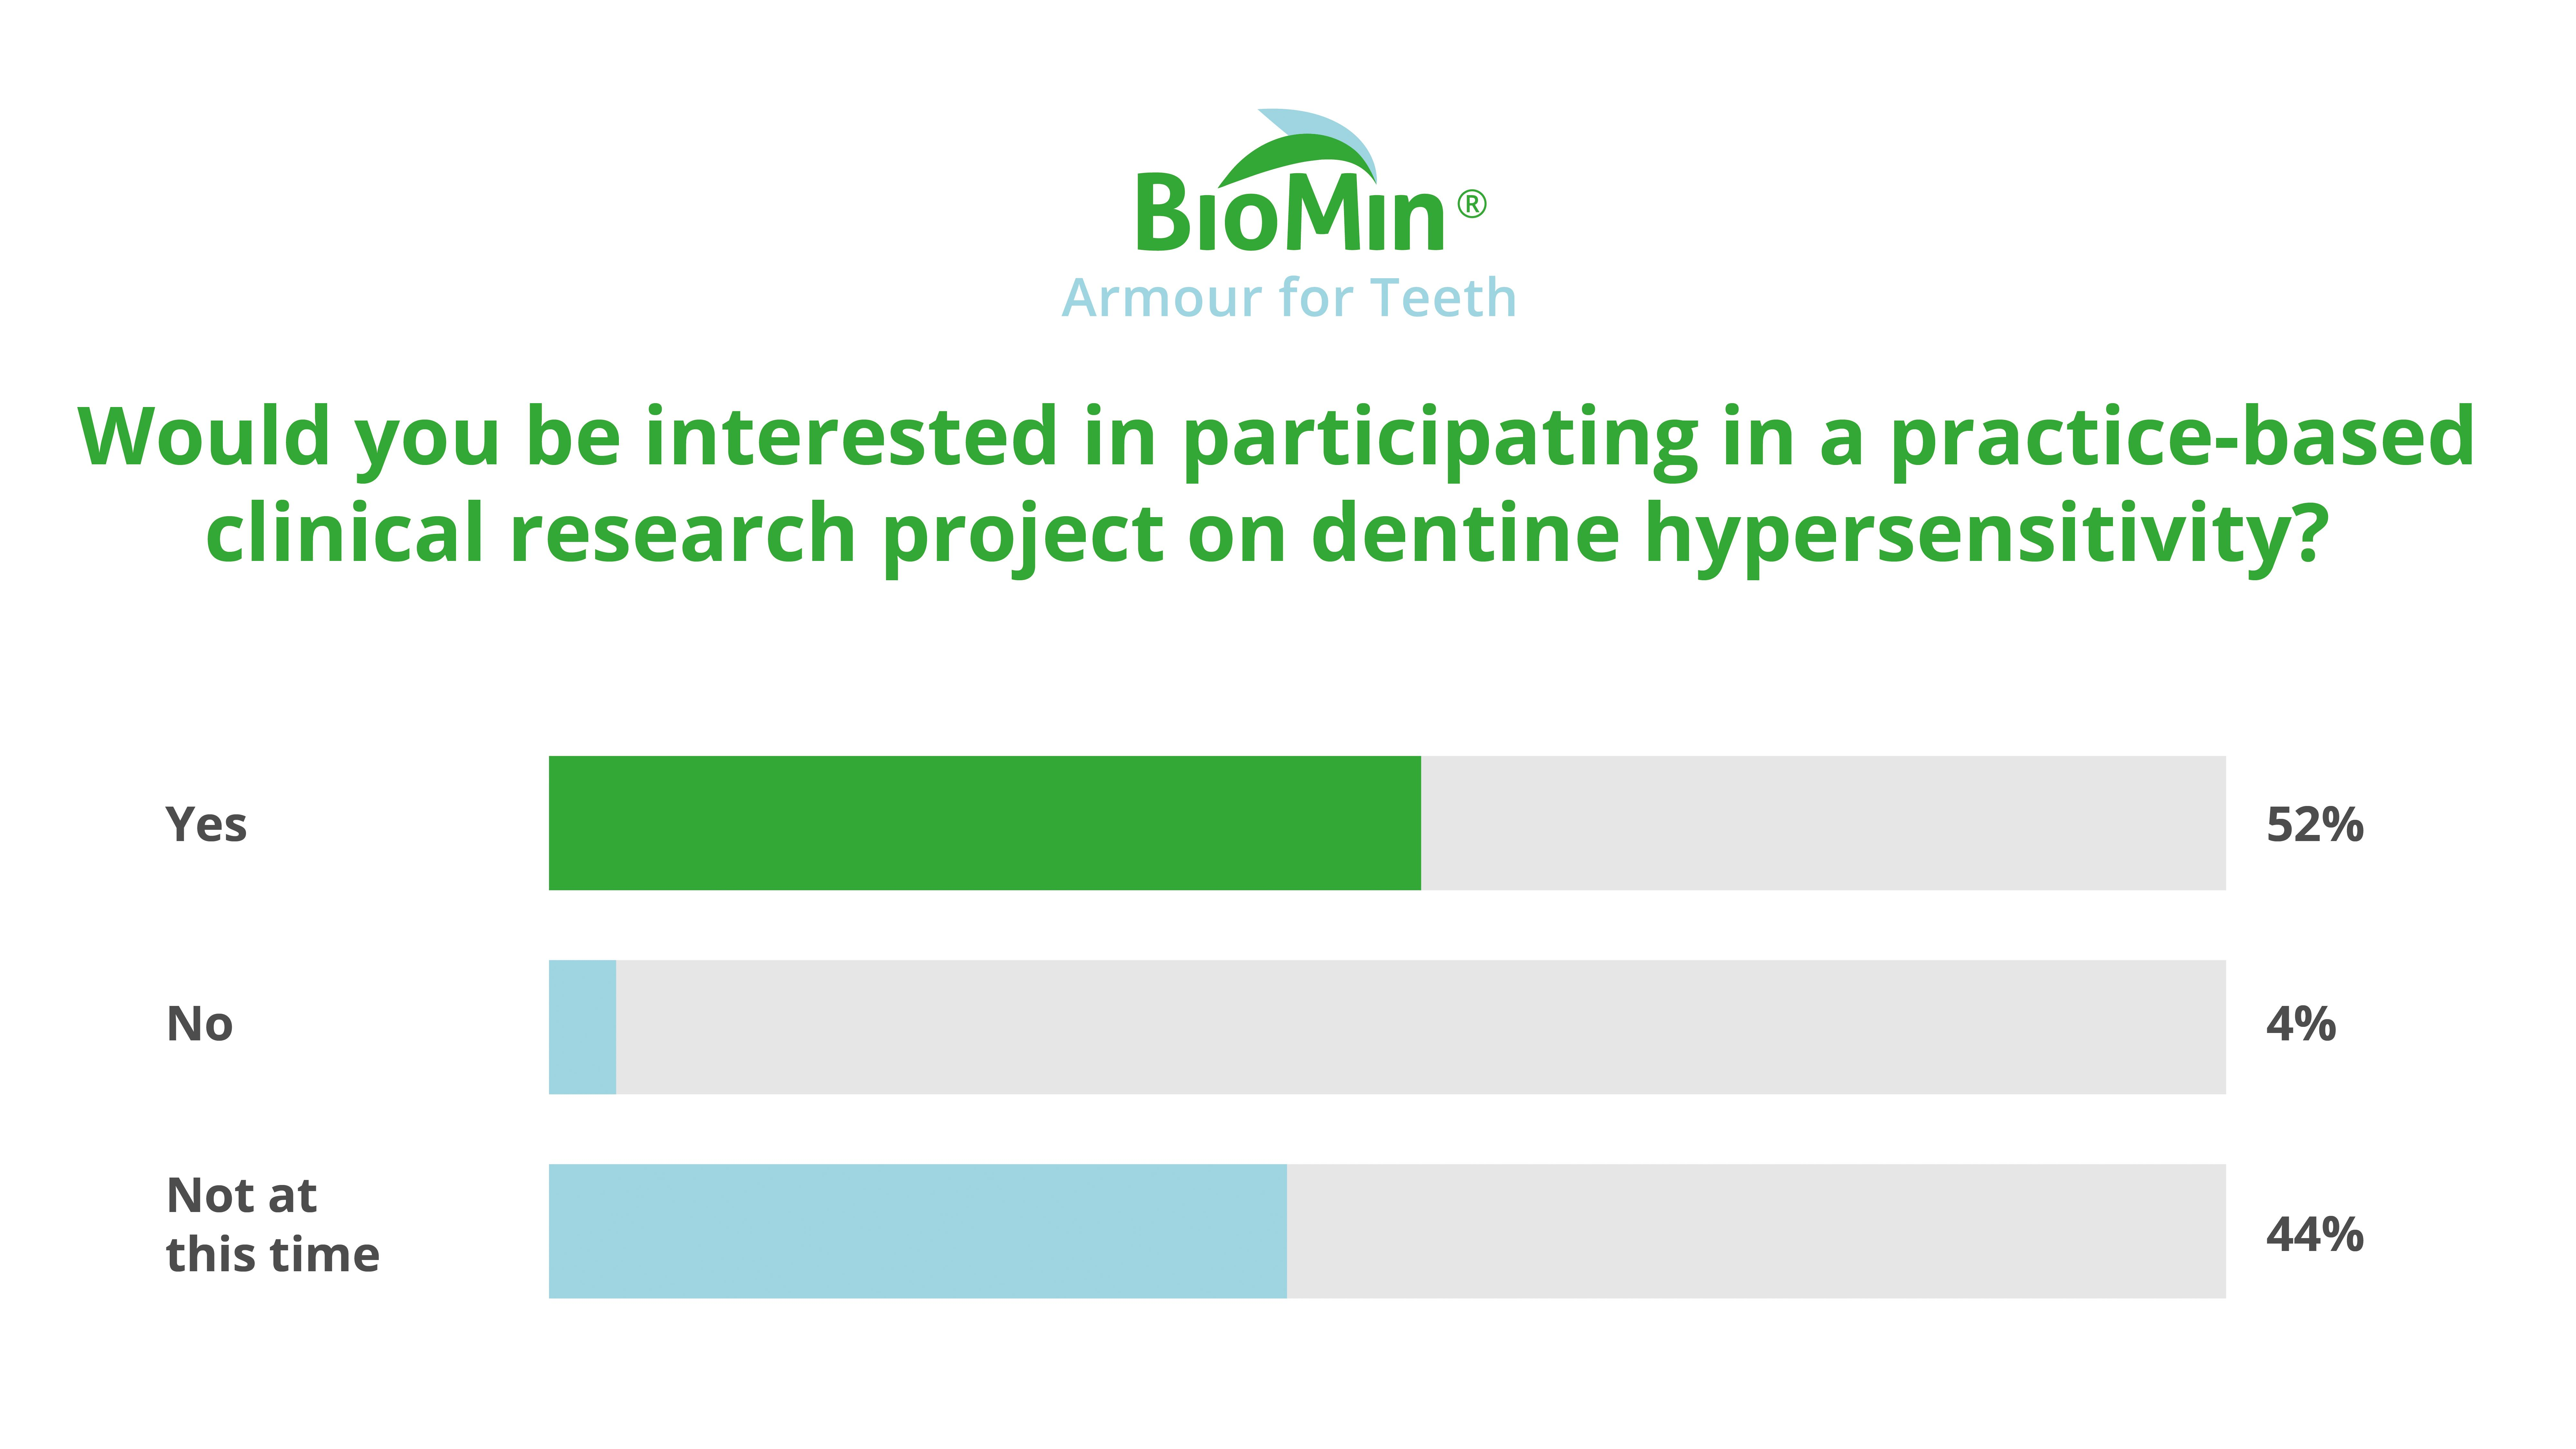 Would you be interested in participating in a practice-based clinical research project on dentine hypersensitivity?